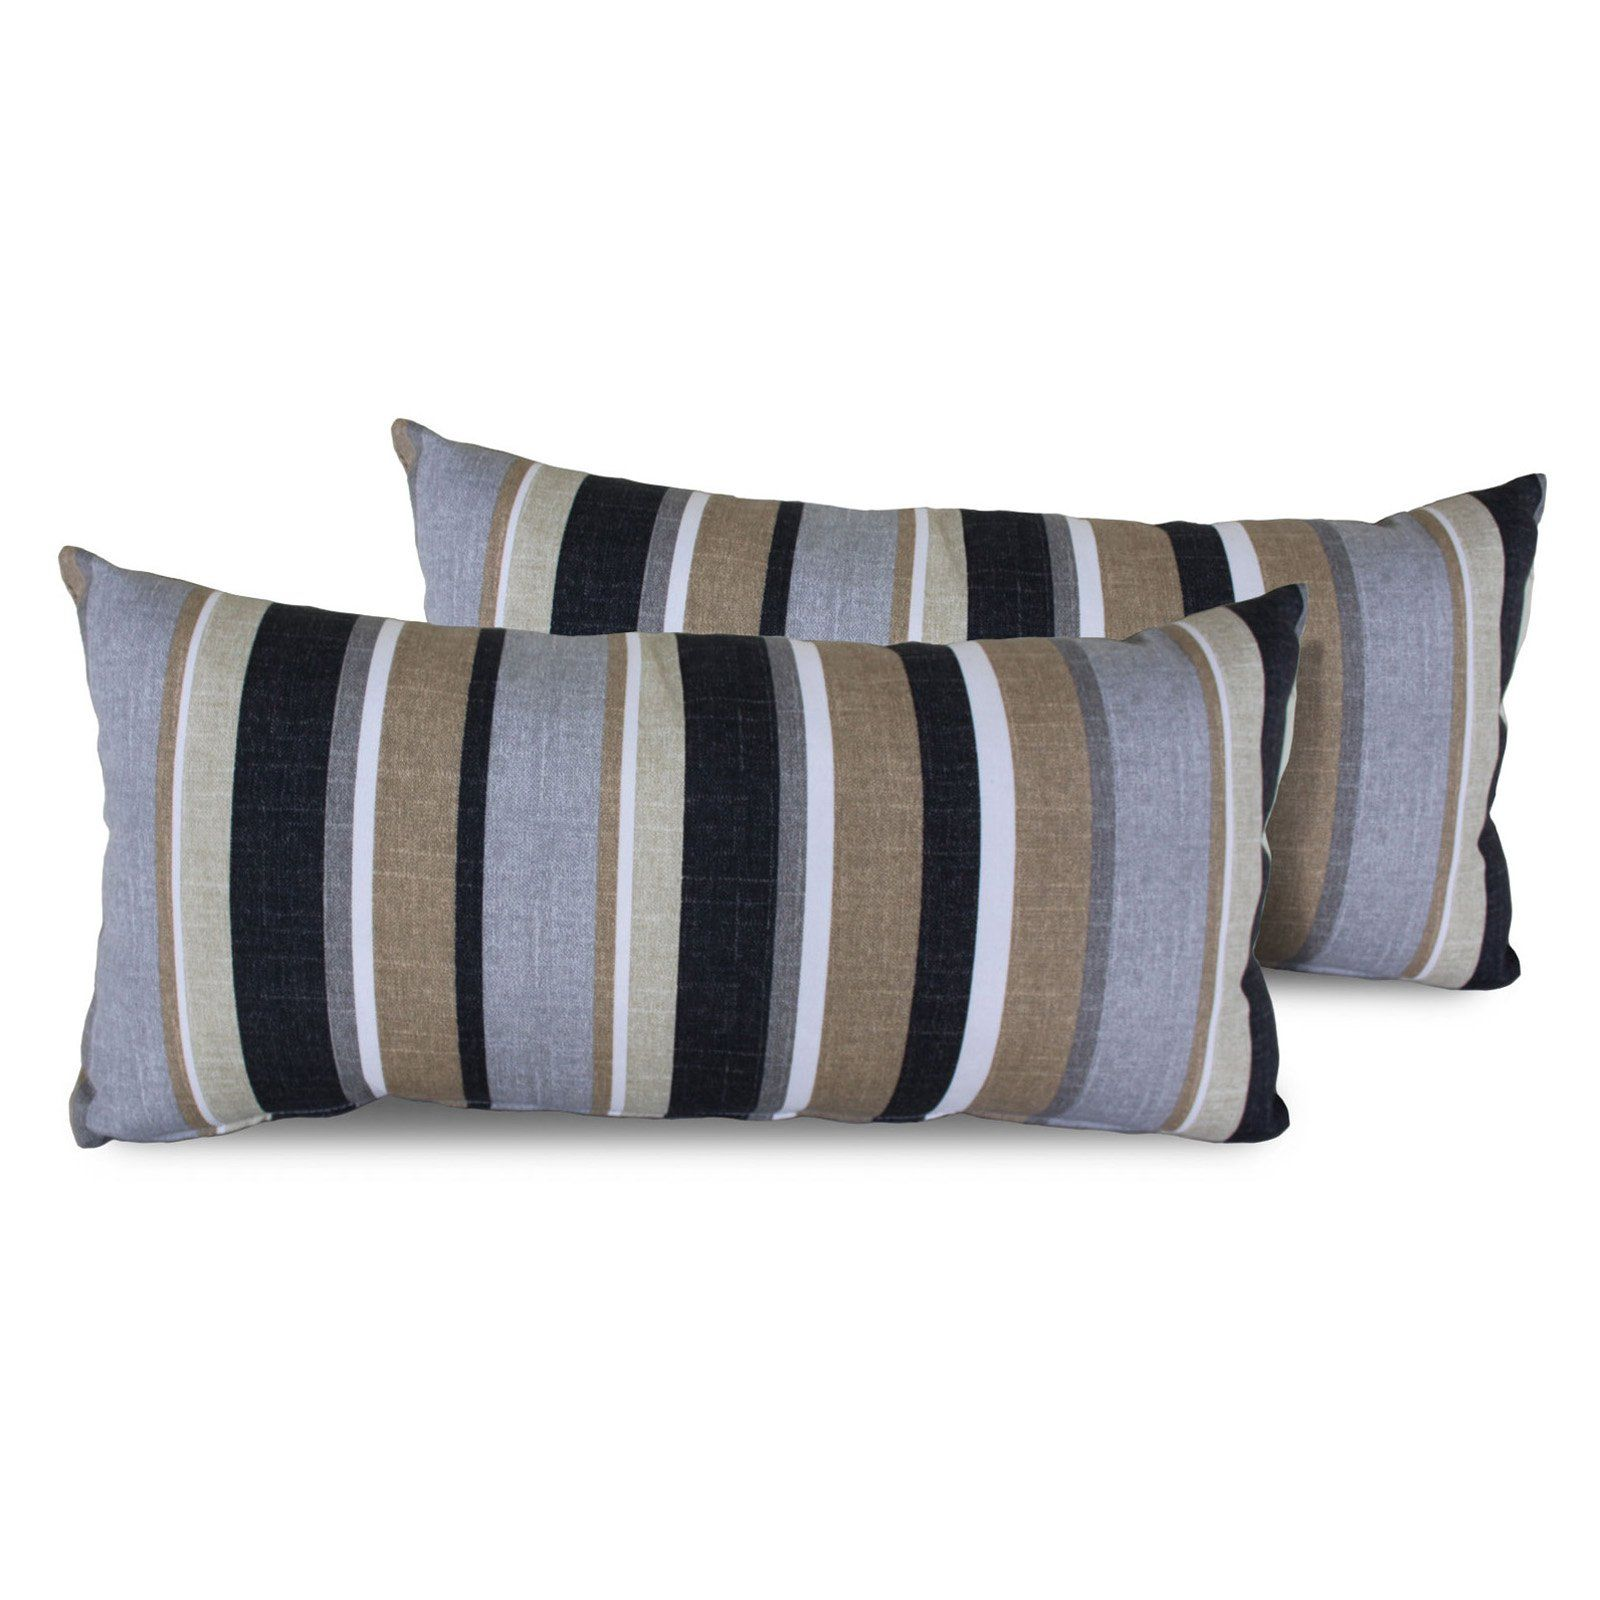 Patio Garden Outdoor Throw Pillows Throw Pillows Throw